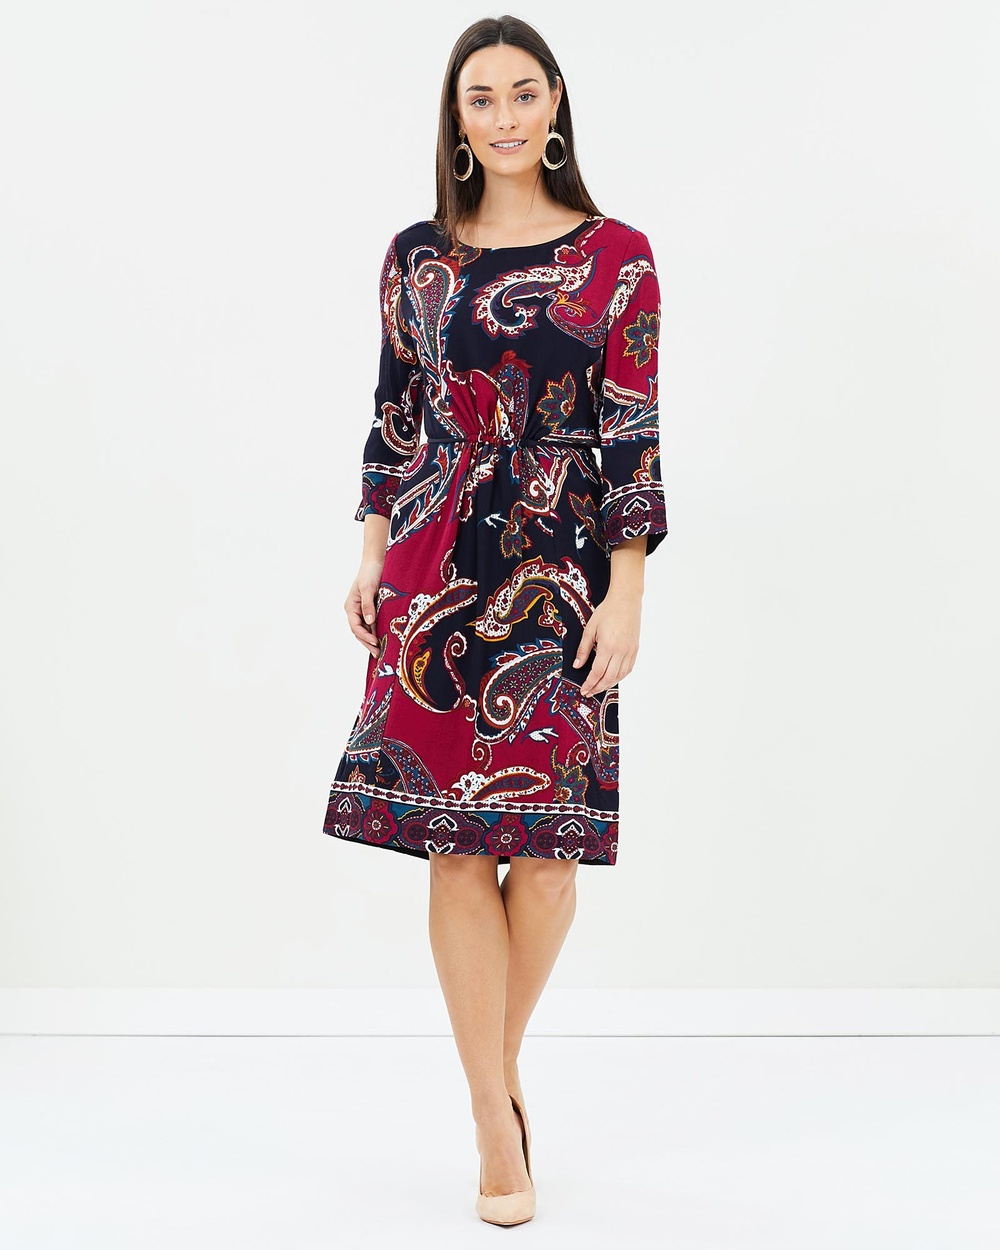 Sportscraft Caprice Paisley Dress Dresses Navy Multi Caprice Paisley Dress